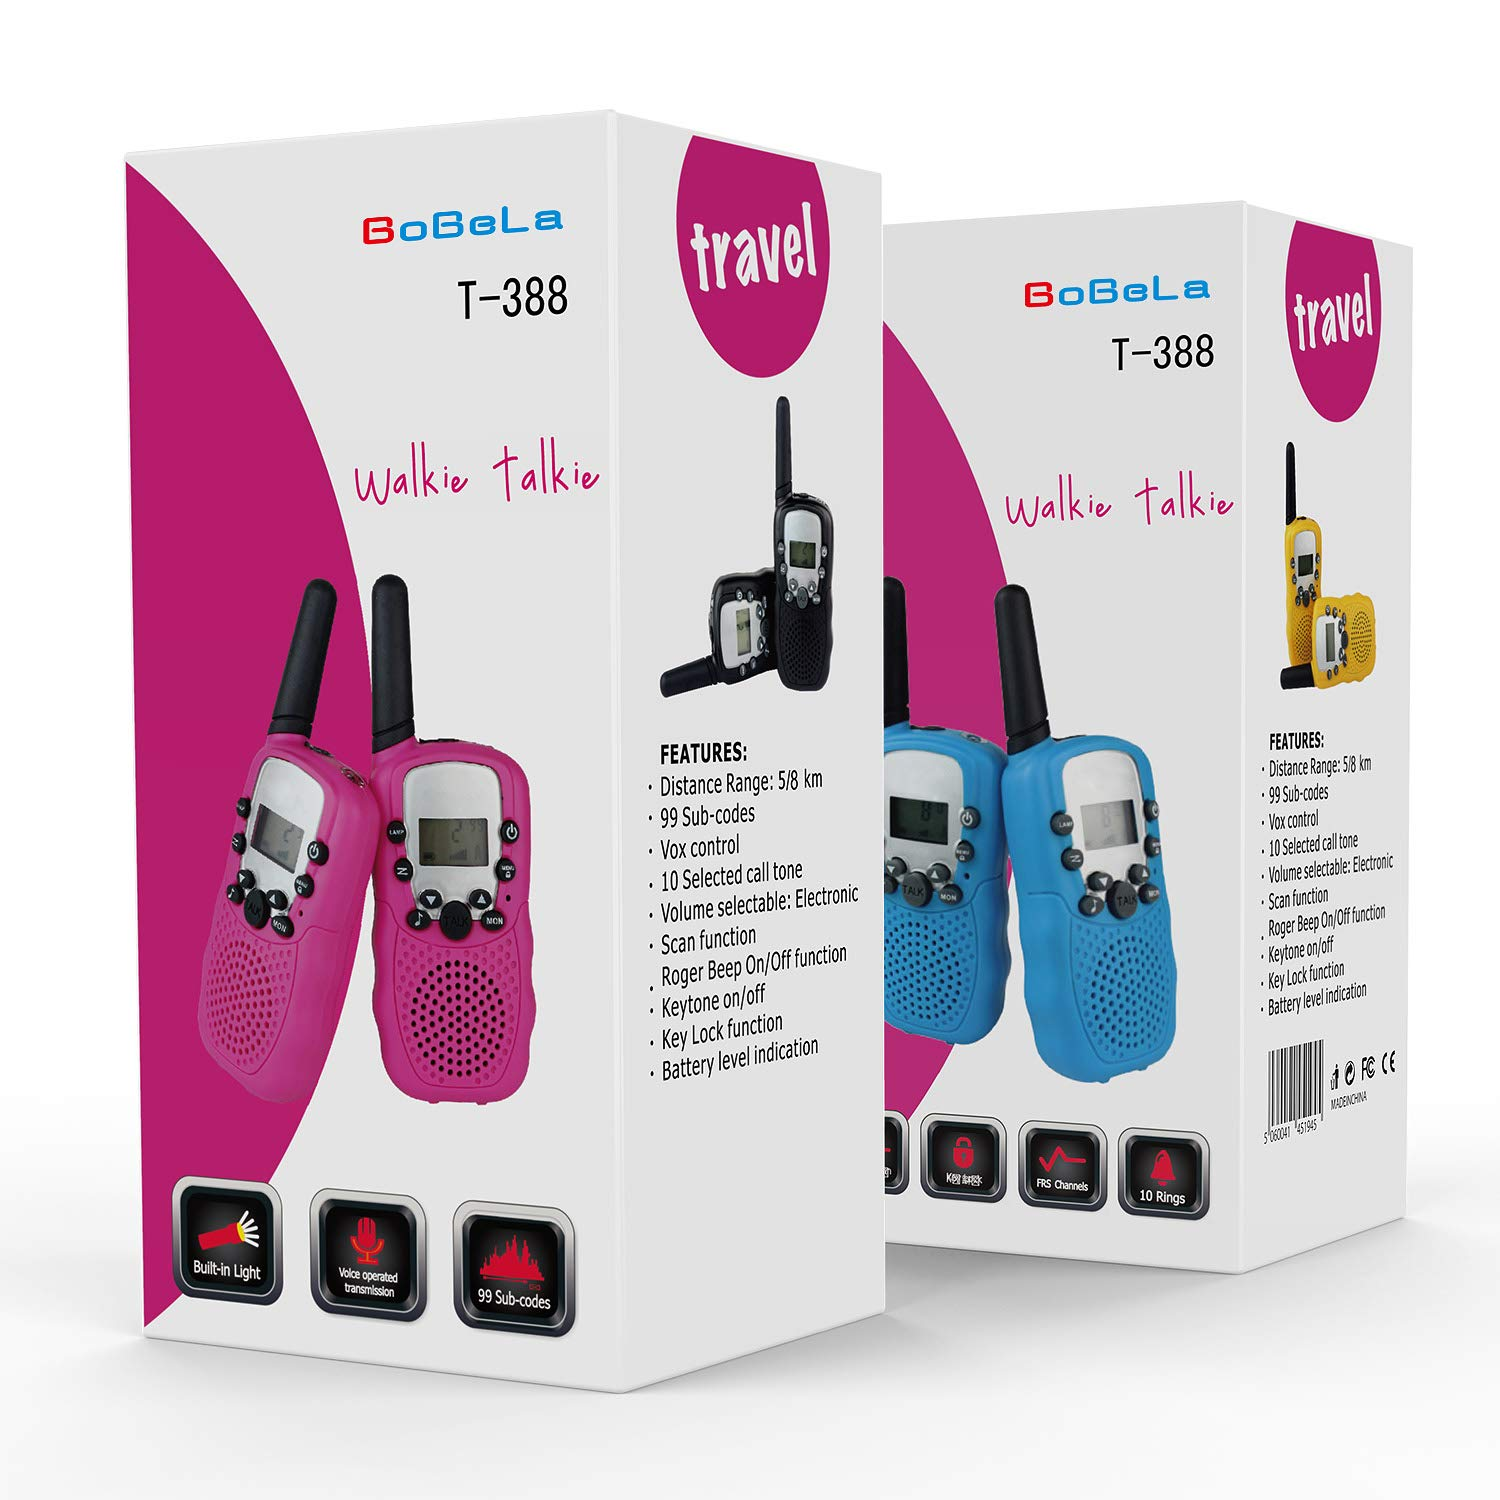 Bobela Walkie-Talkies 4 Pack for Adults Travel - T-388 Black Handheld Walky-Talky with Flashlight for Parents Kids - 2-Way-Radio with Mic PTT Clip Long Range for Baby Teen Boy Girl Him Family as Gifts by Bobela (Image #8)